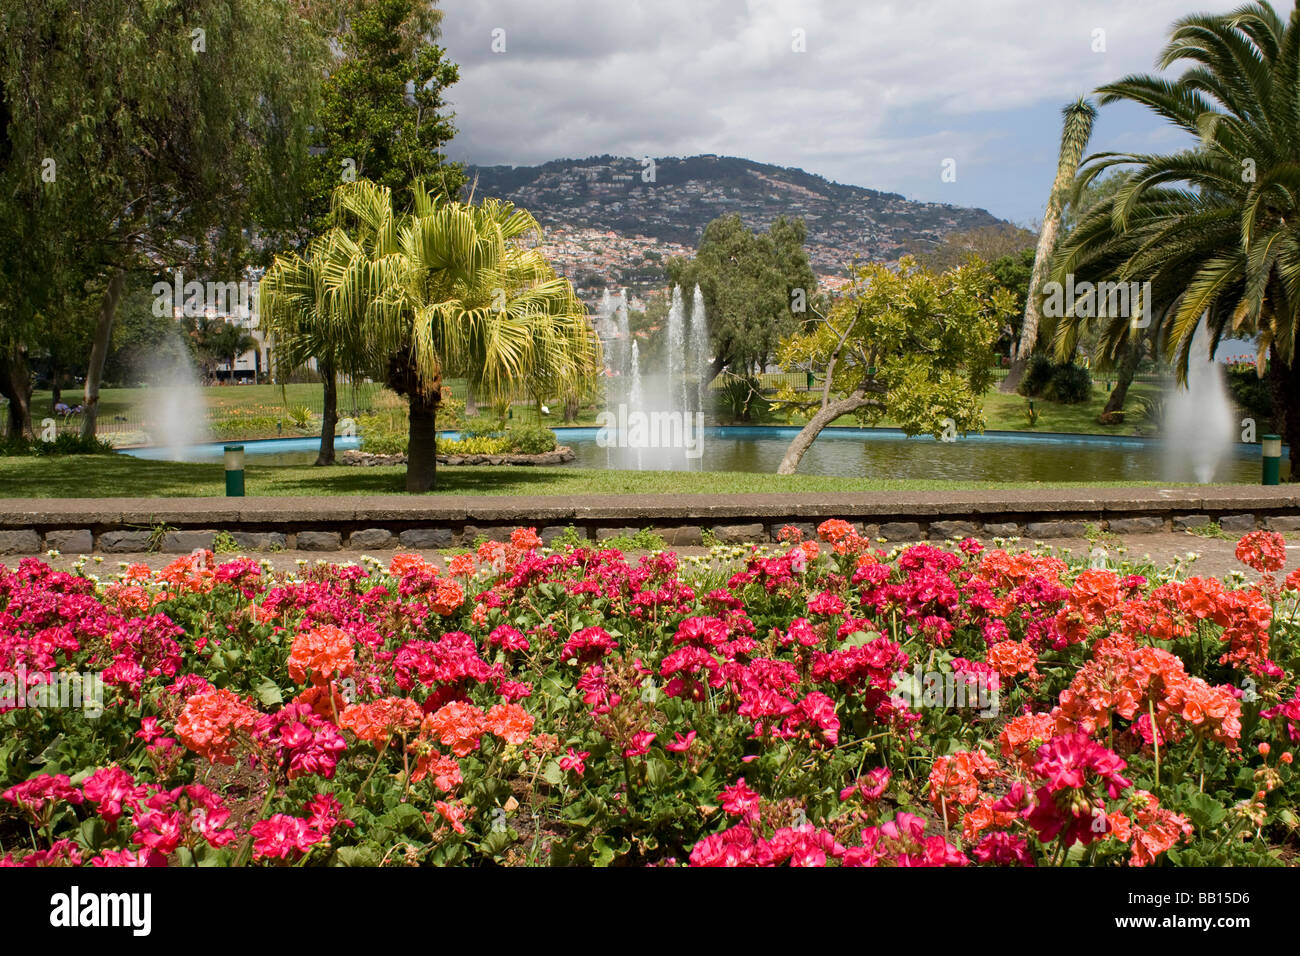 Municipal Gardens Funchal Madeira Seaside City Portuguese Island In The Mid  Atlantic Ocean